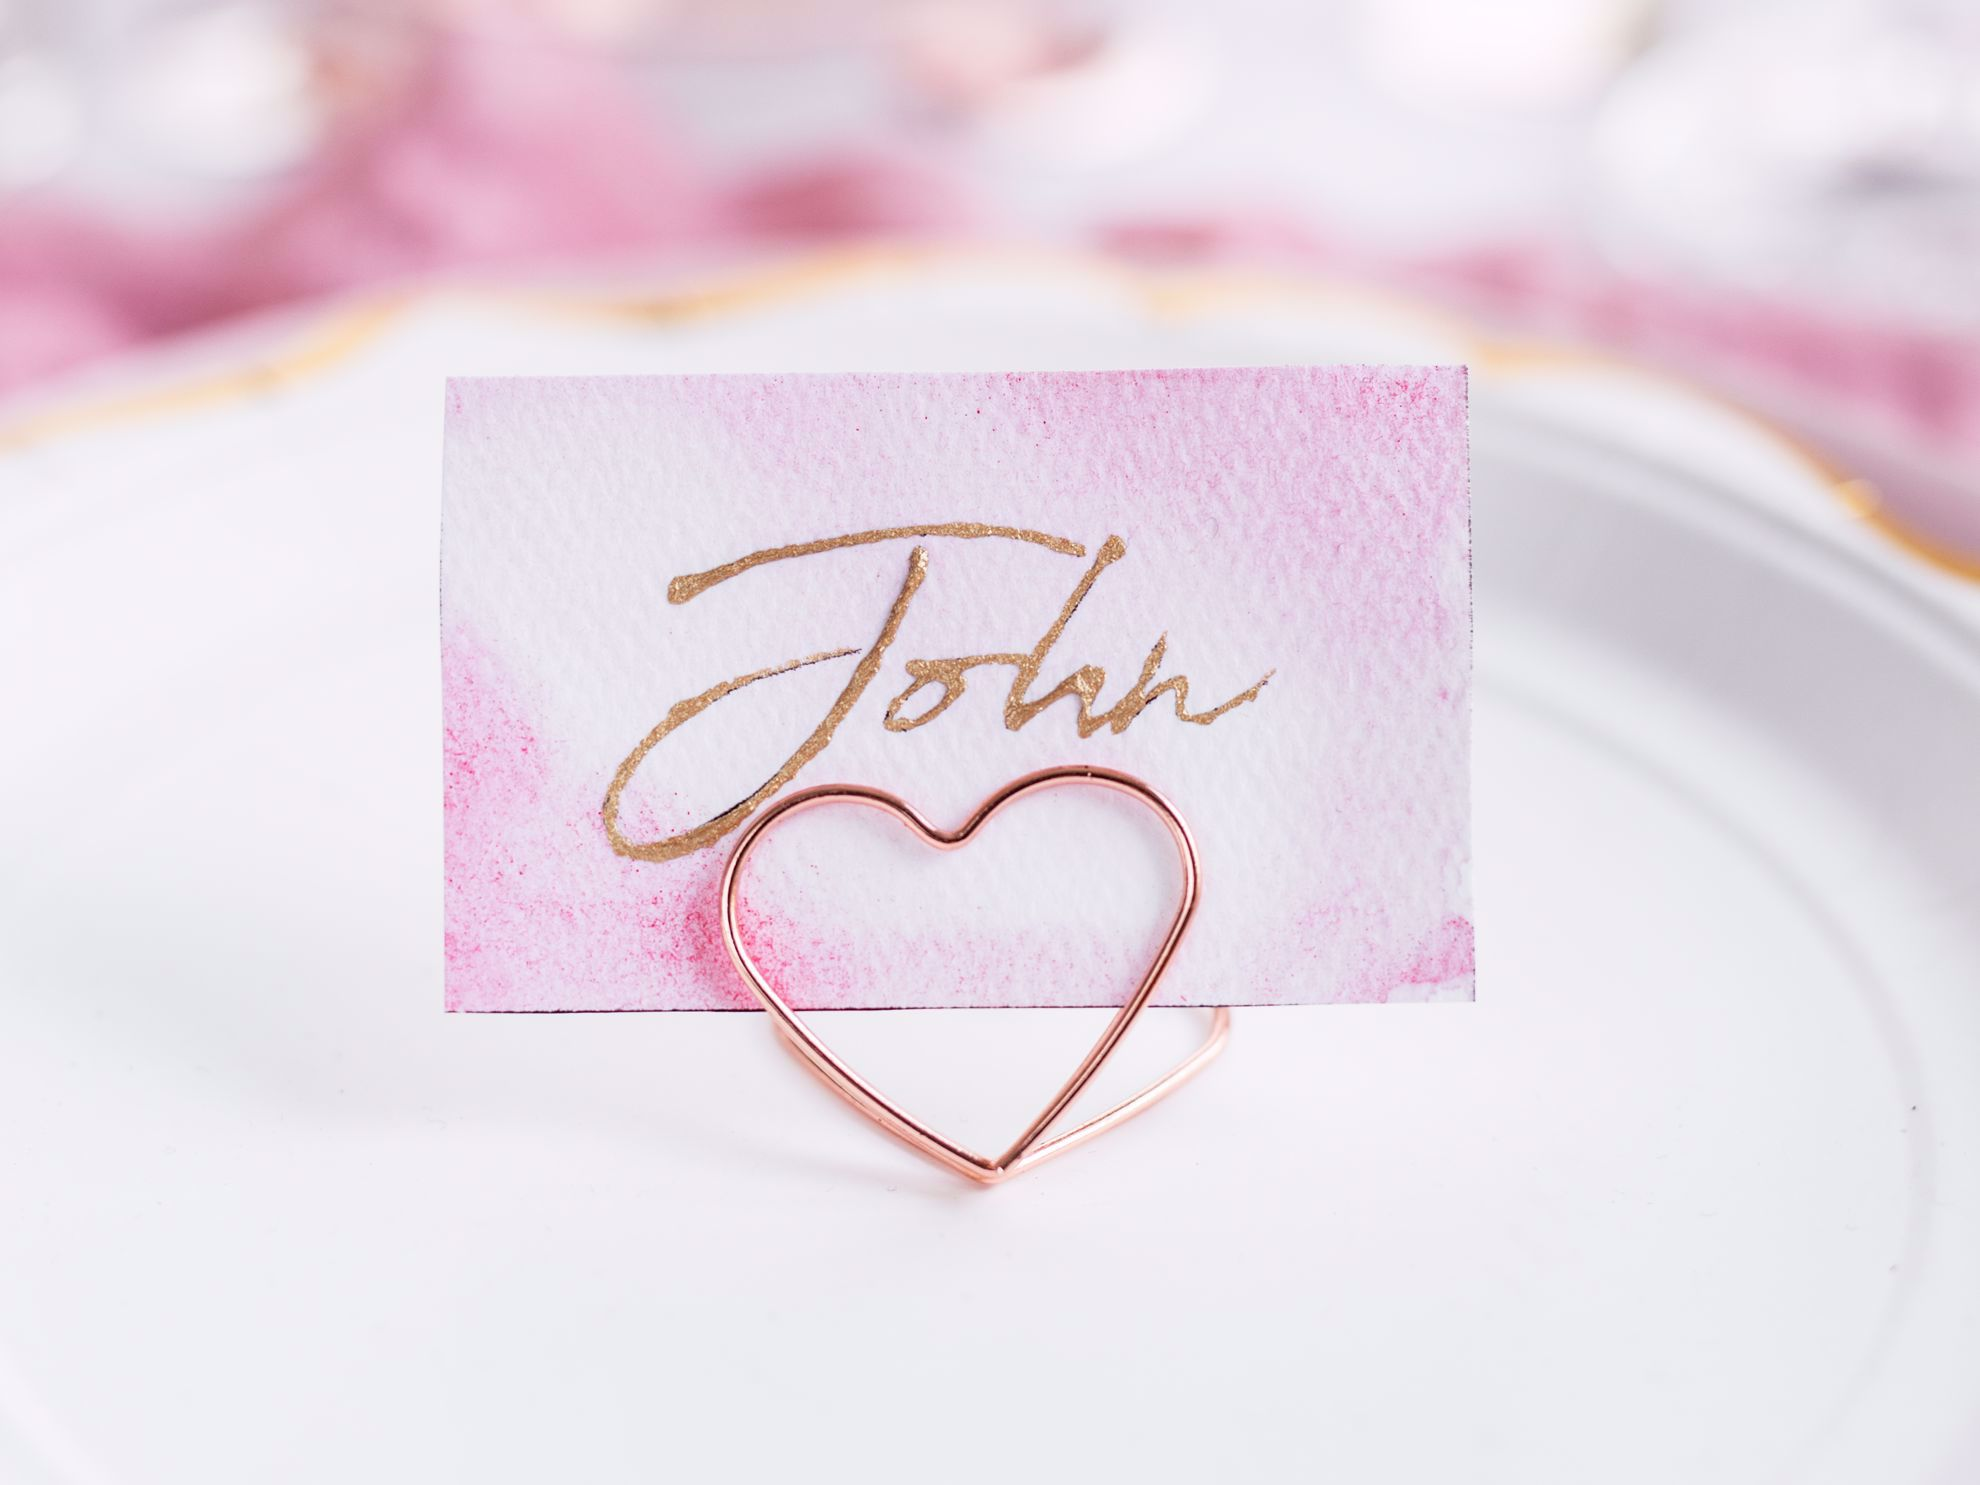 ROSE GOLD PLACE CARD HOLDER WEDDING DECORATIONS - HEARTS